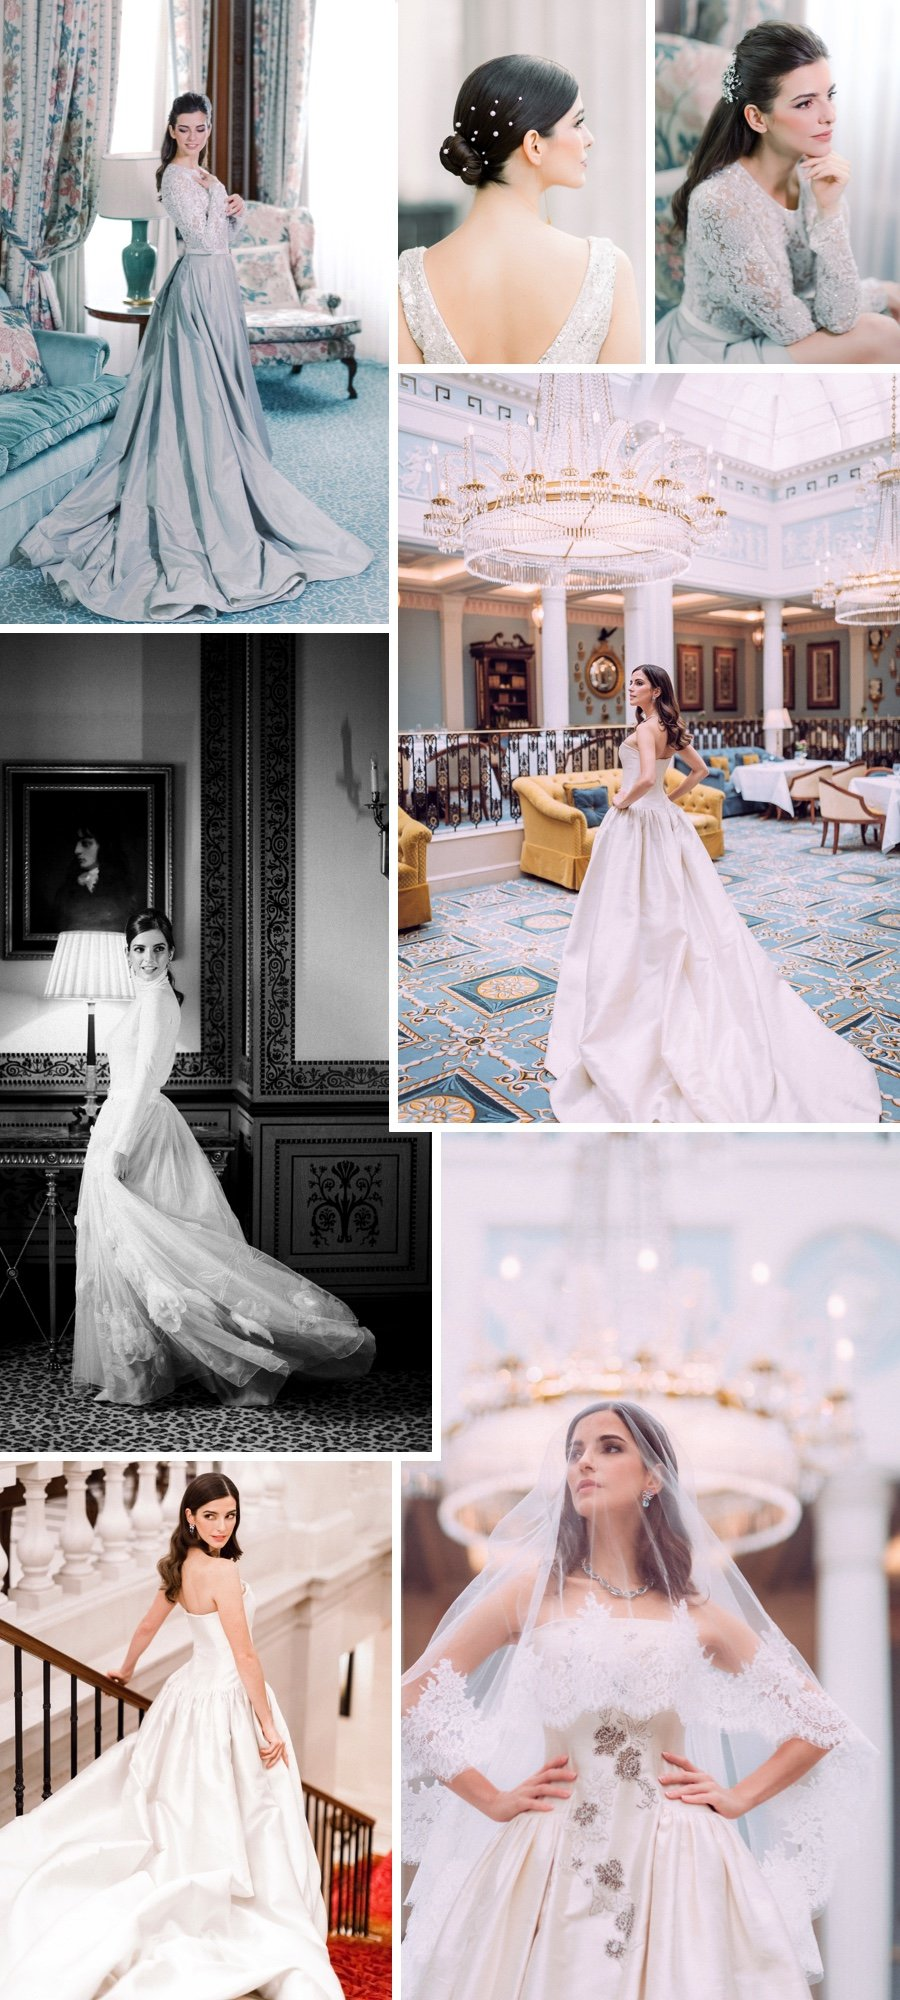 Style shoot: The Lanesborough presents Bruce Oldfield